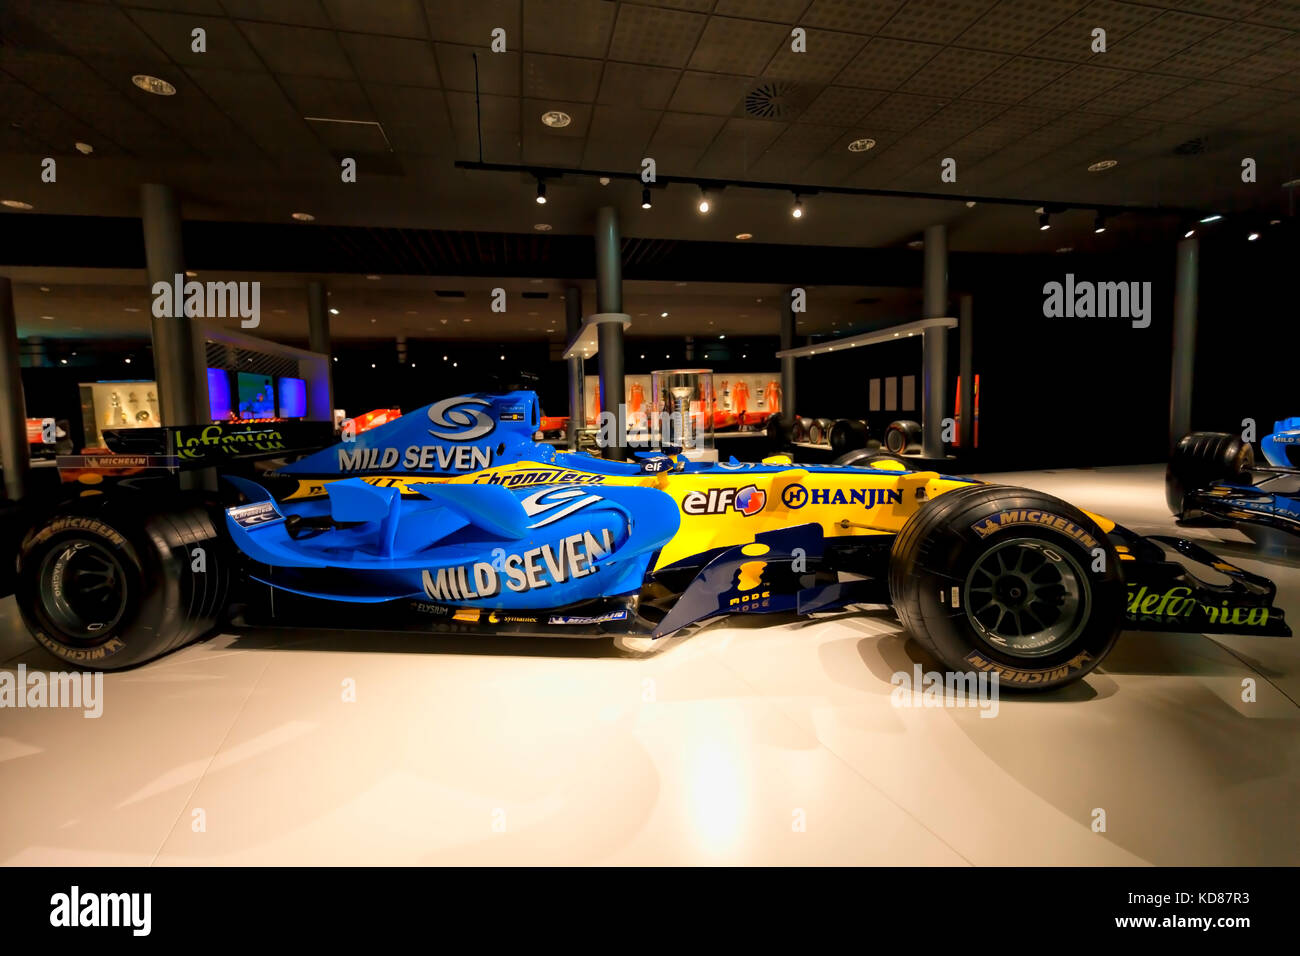 Renault R25 of F1 with which Fernando Alonso was world champion for the first time in 2005. Photograph taken on - Stock Image